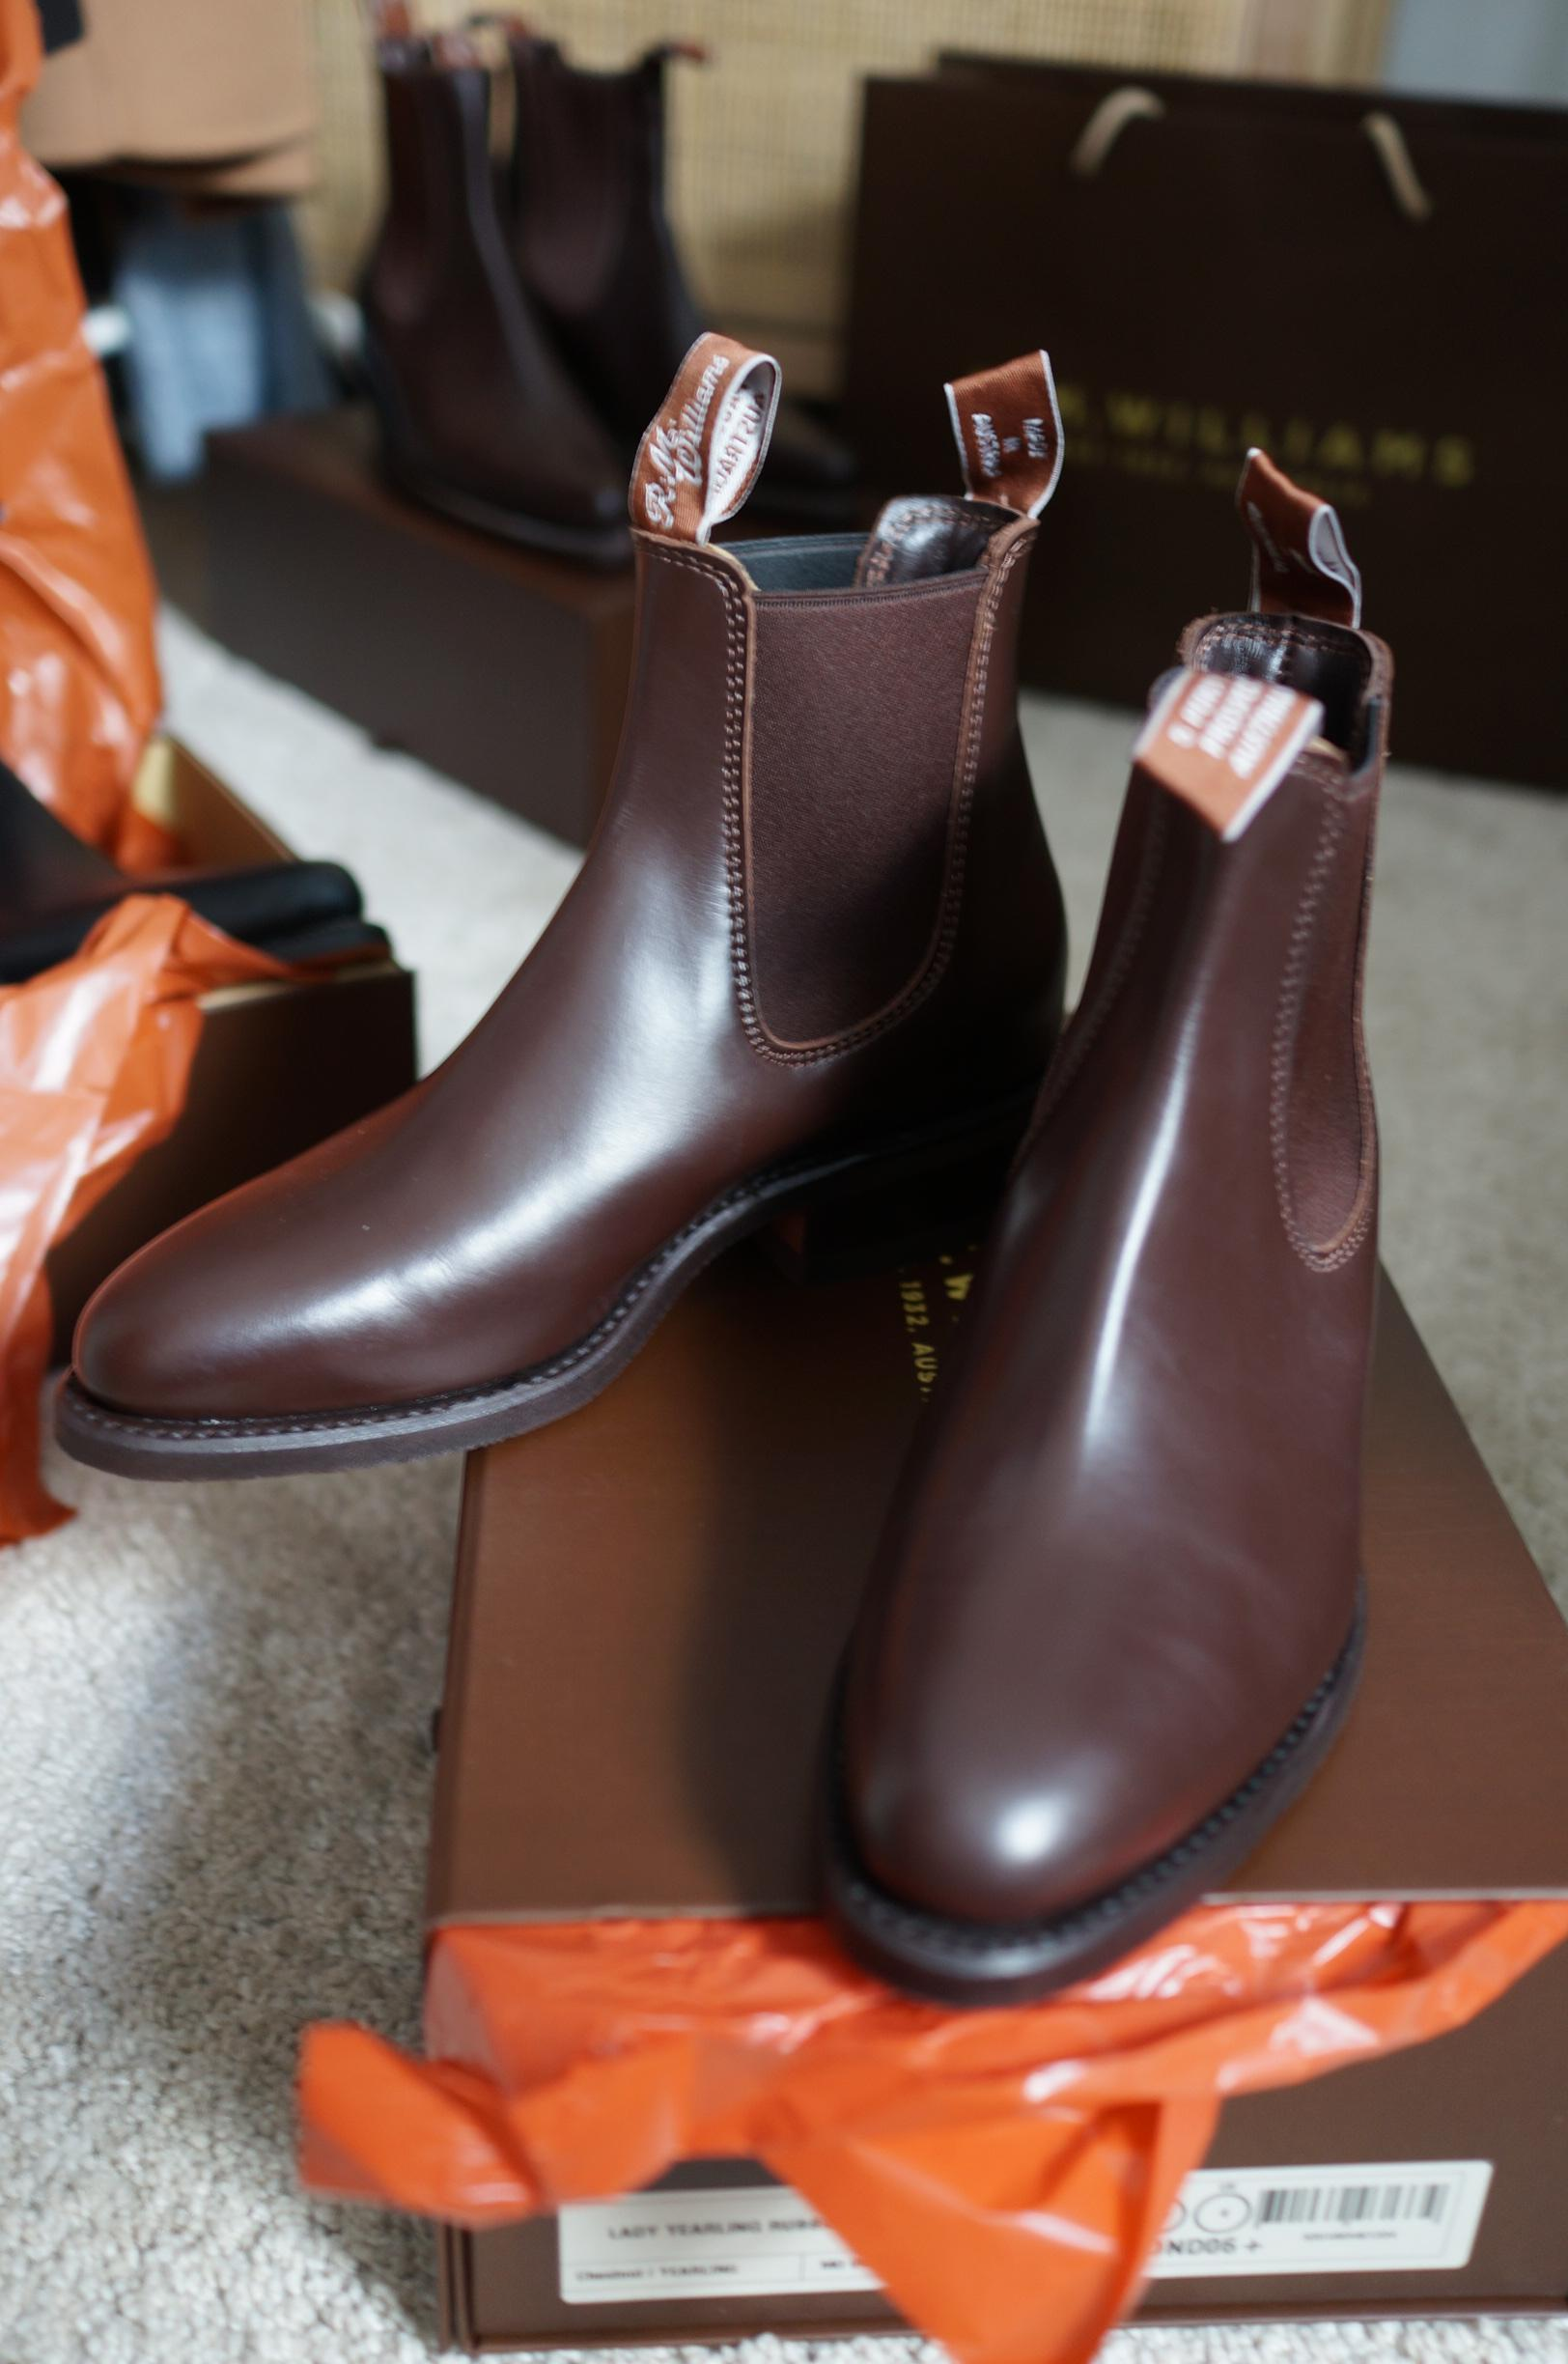 r.m. williams lady yearling boots in blog post about r.m. williams boots and first impressions